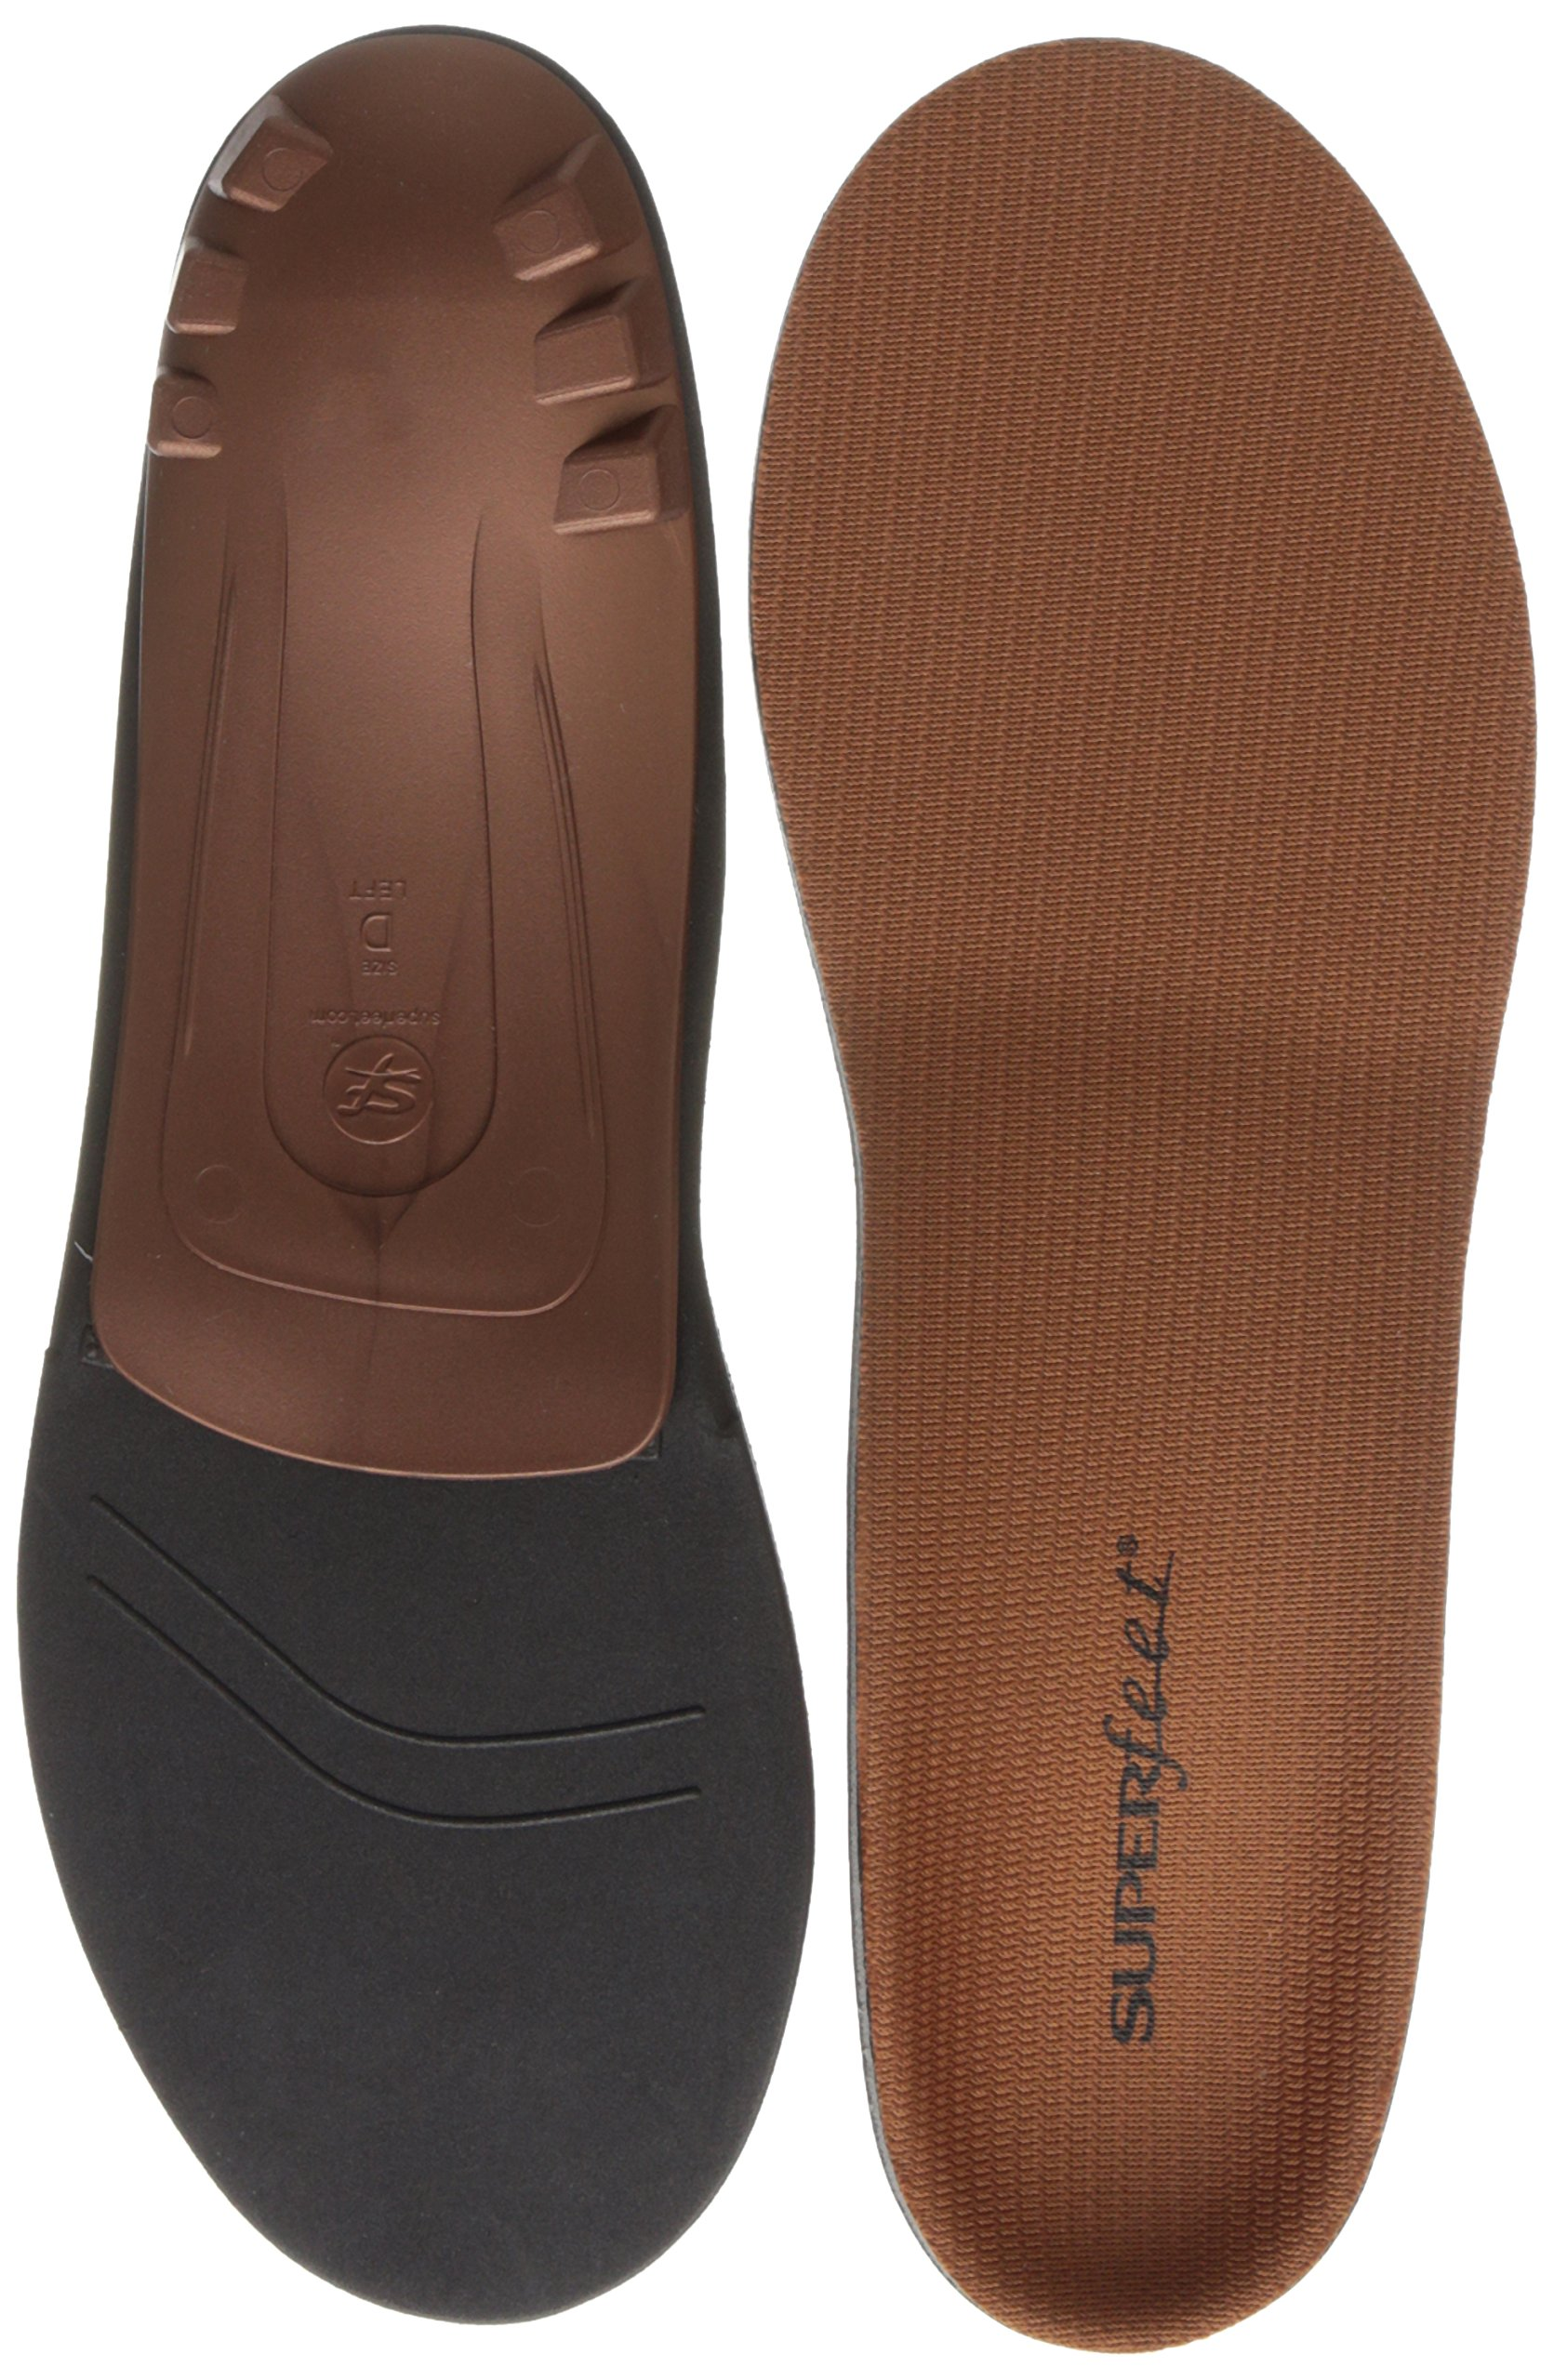 Superfeet COPPER, Memory Foam Comfort Orthotic Insoles, Unisex, Copper, Small/6.5-8 Wmns/5.5-7 Mens by Superfeet (Image #2)